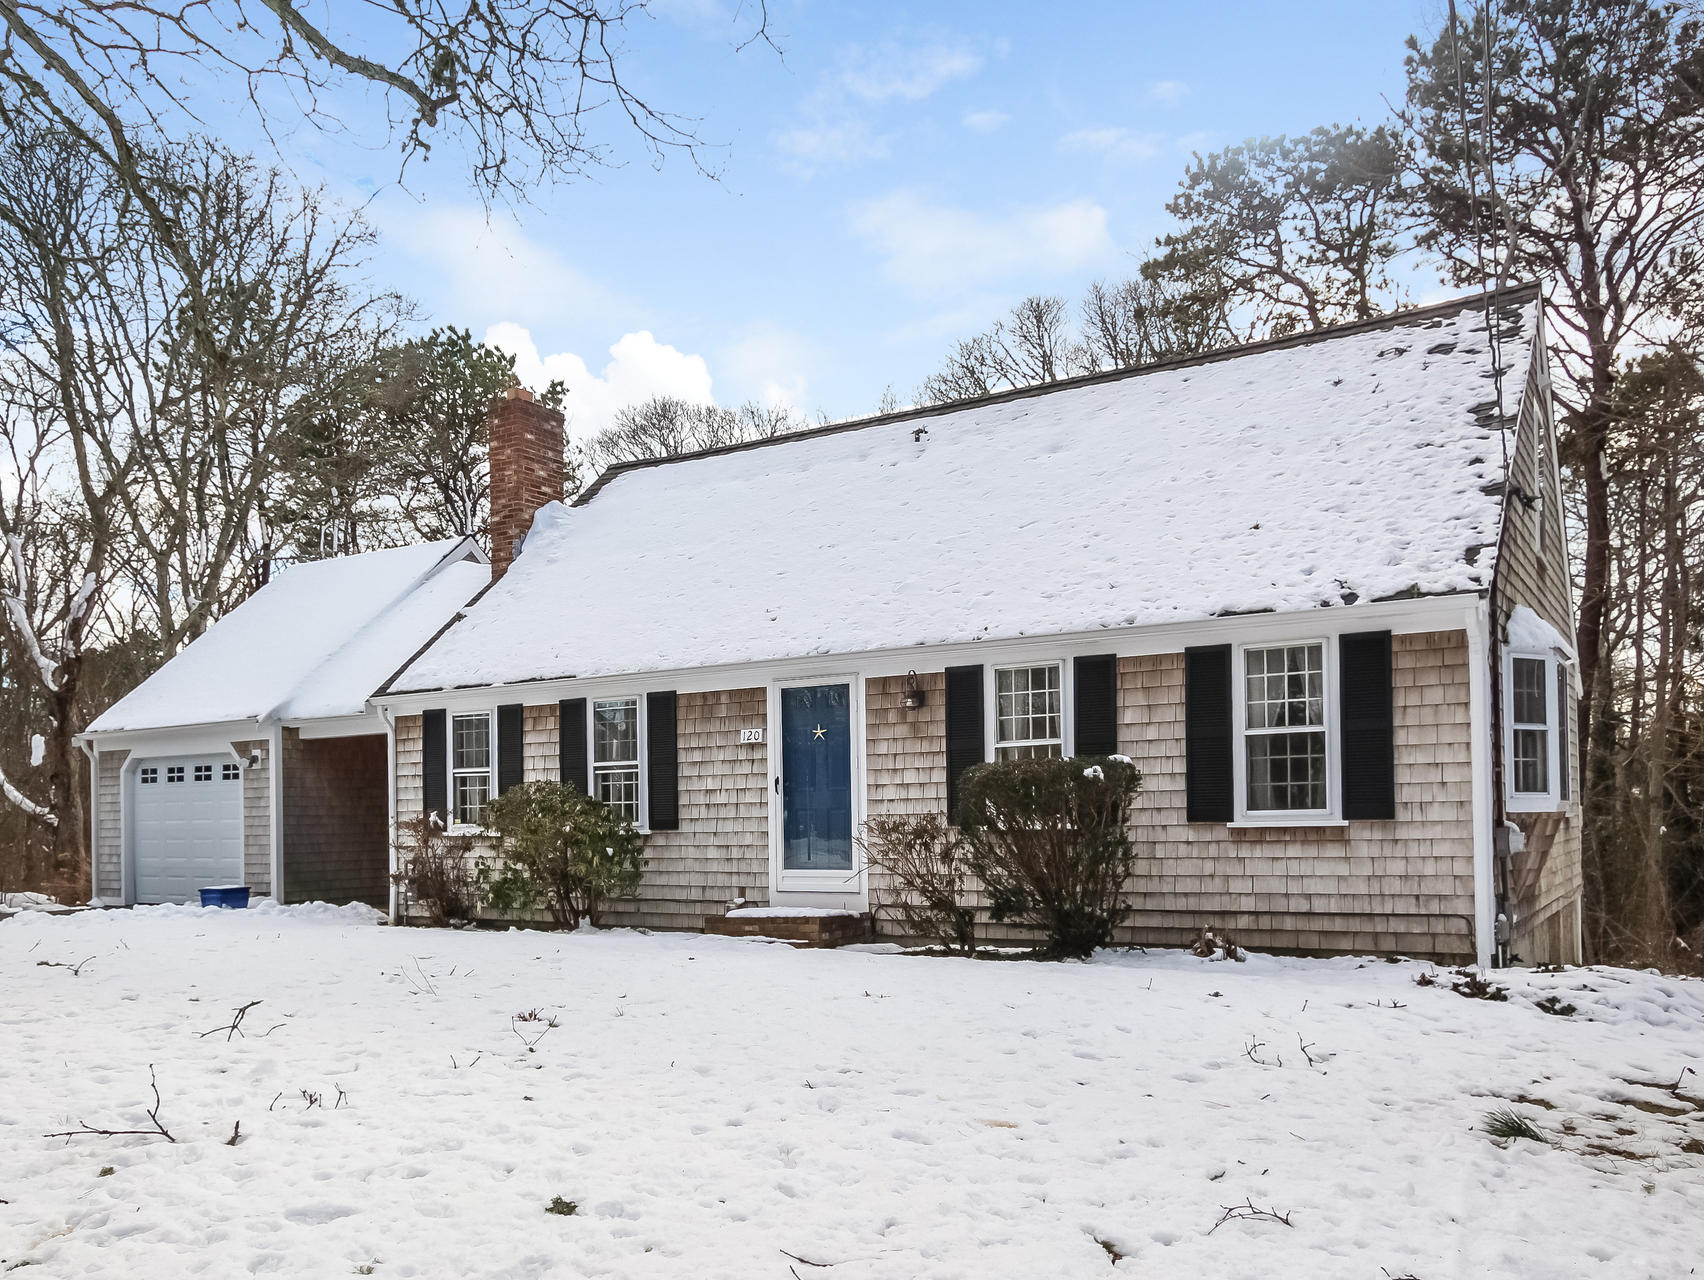 120 Gages Way, Brewster, MA - USA (photo 1)